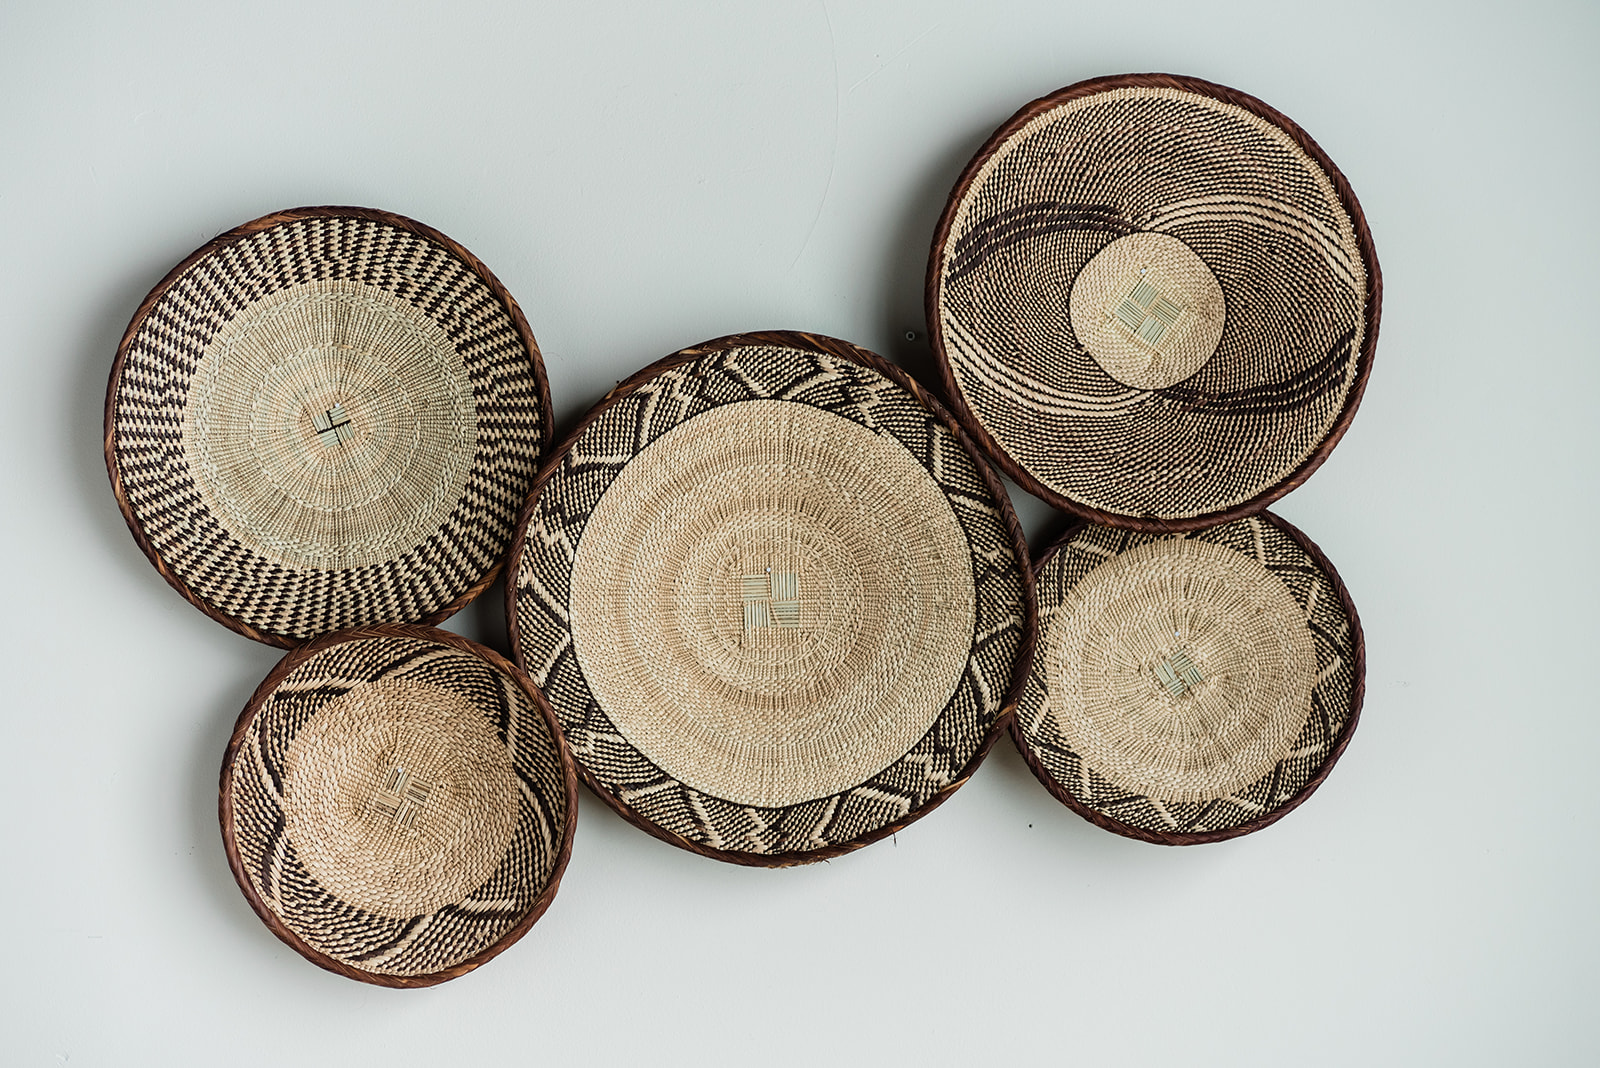 Handmade Woven Wall Baskets - Set 6 - Staged for Upsell